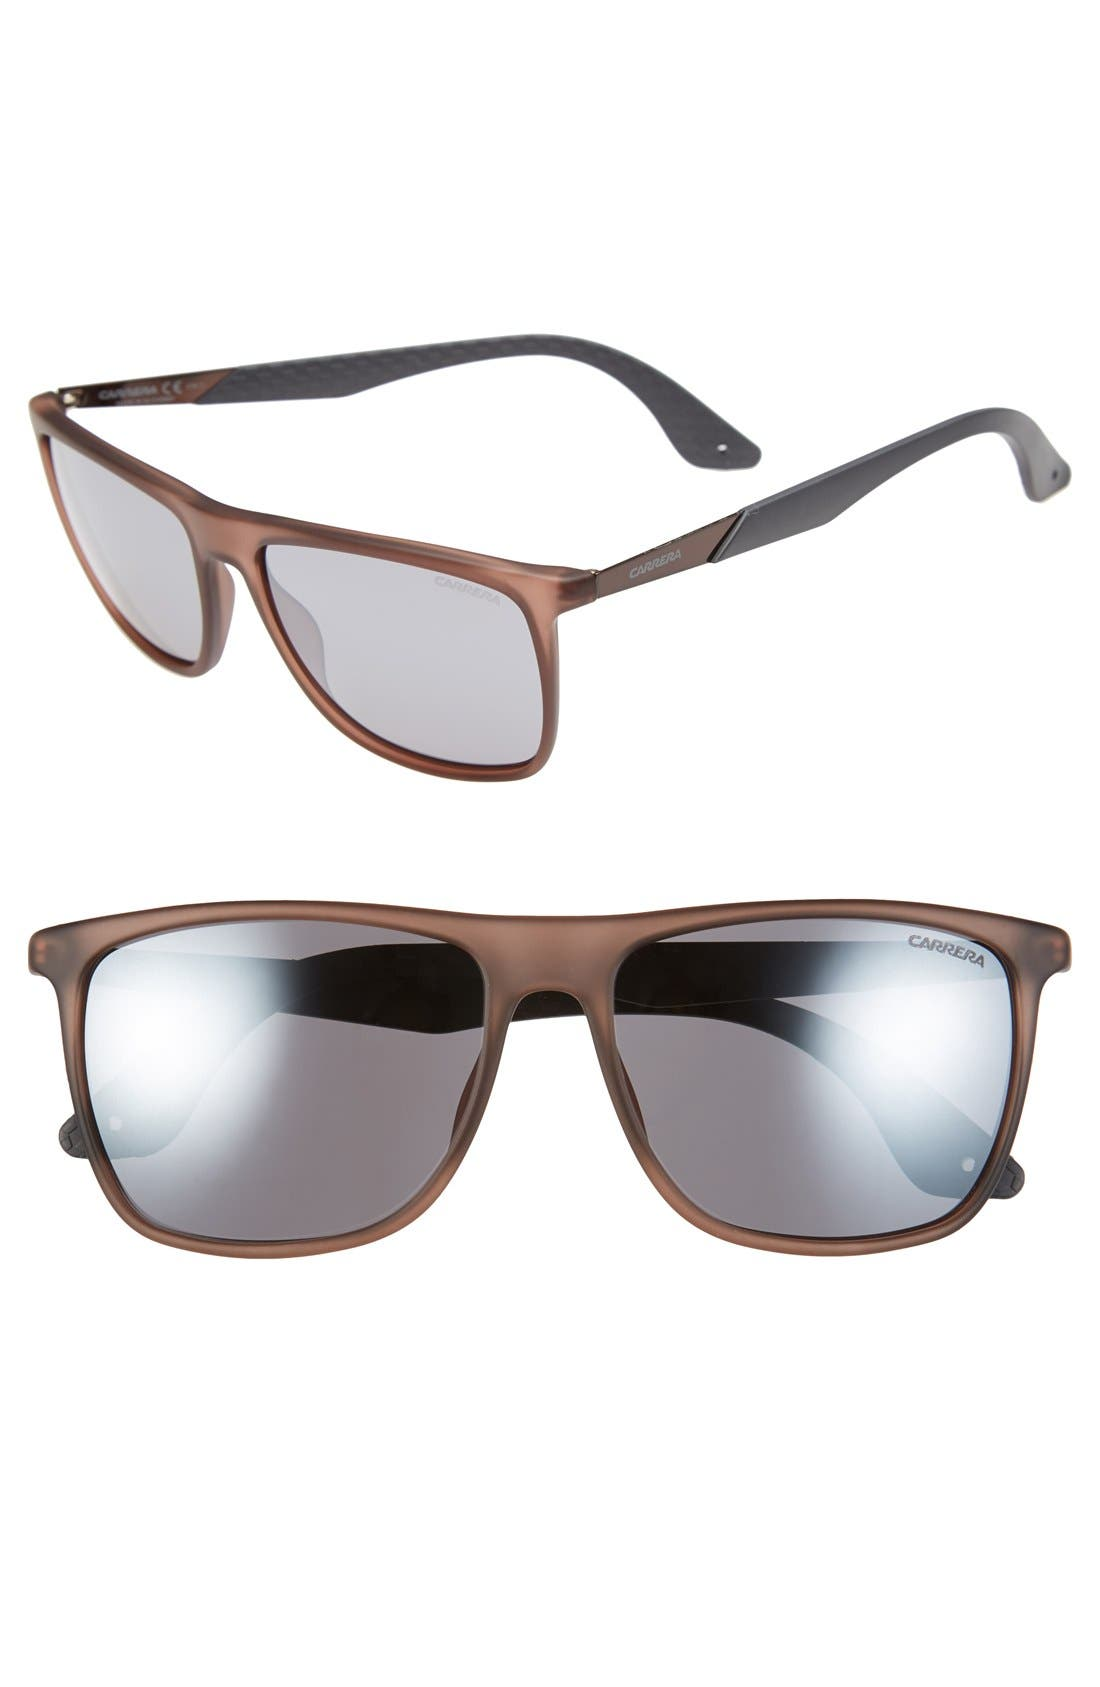 56mm Retro Sunglasses,                         Main,                         color, MATTE BROWN/ GREY FLASH MIRROR